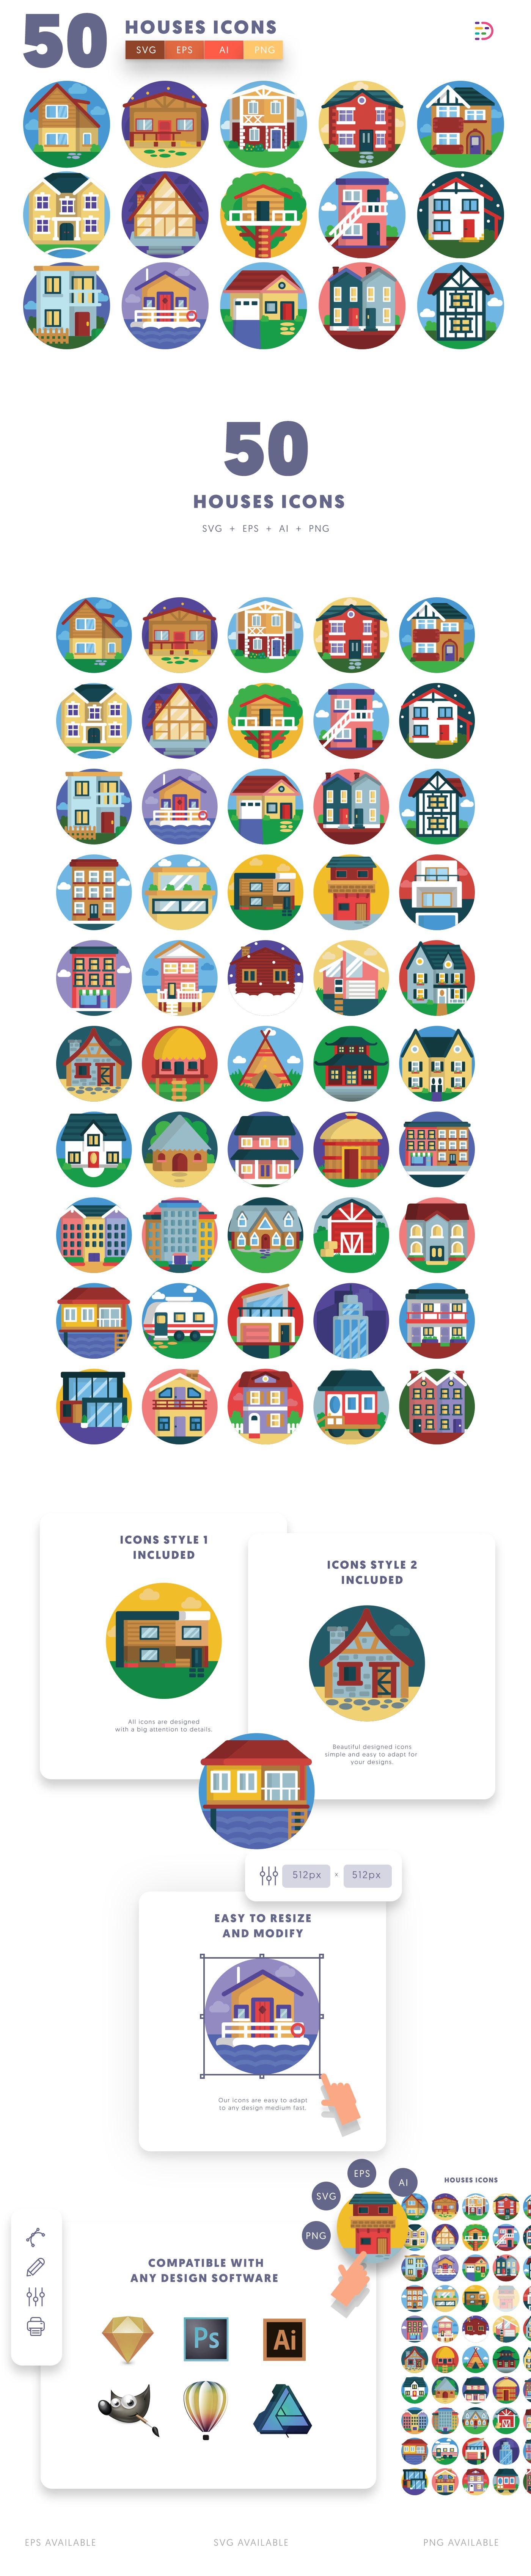 Houses icons info graphic